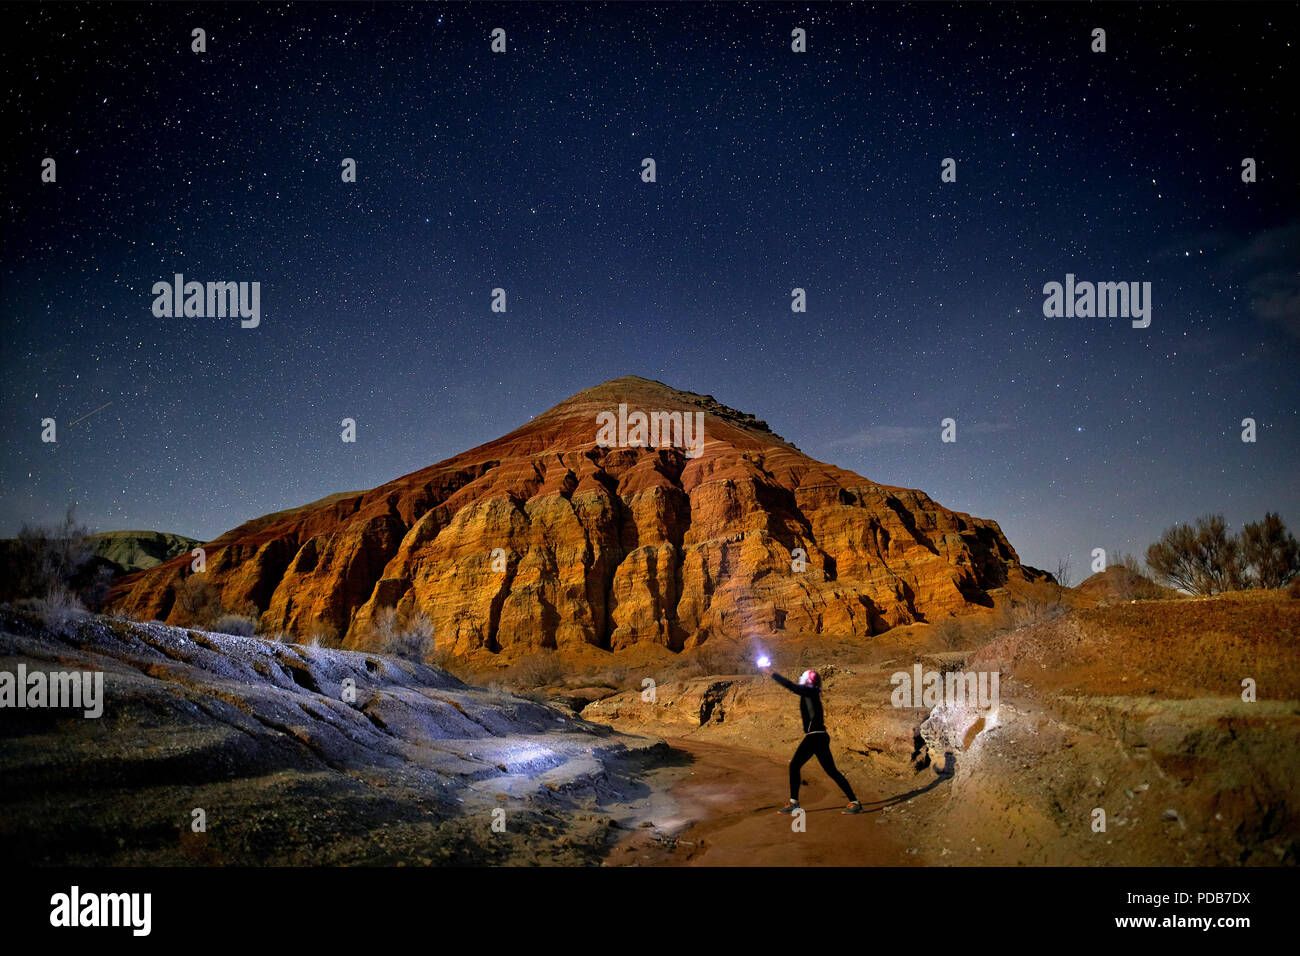 Man with head light in the desert at night sky background. Travel, adventure and expedition concept. - Stock Image